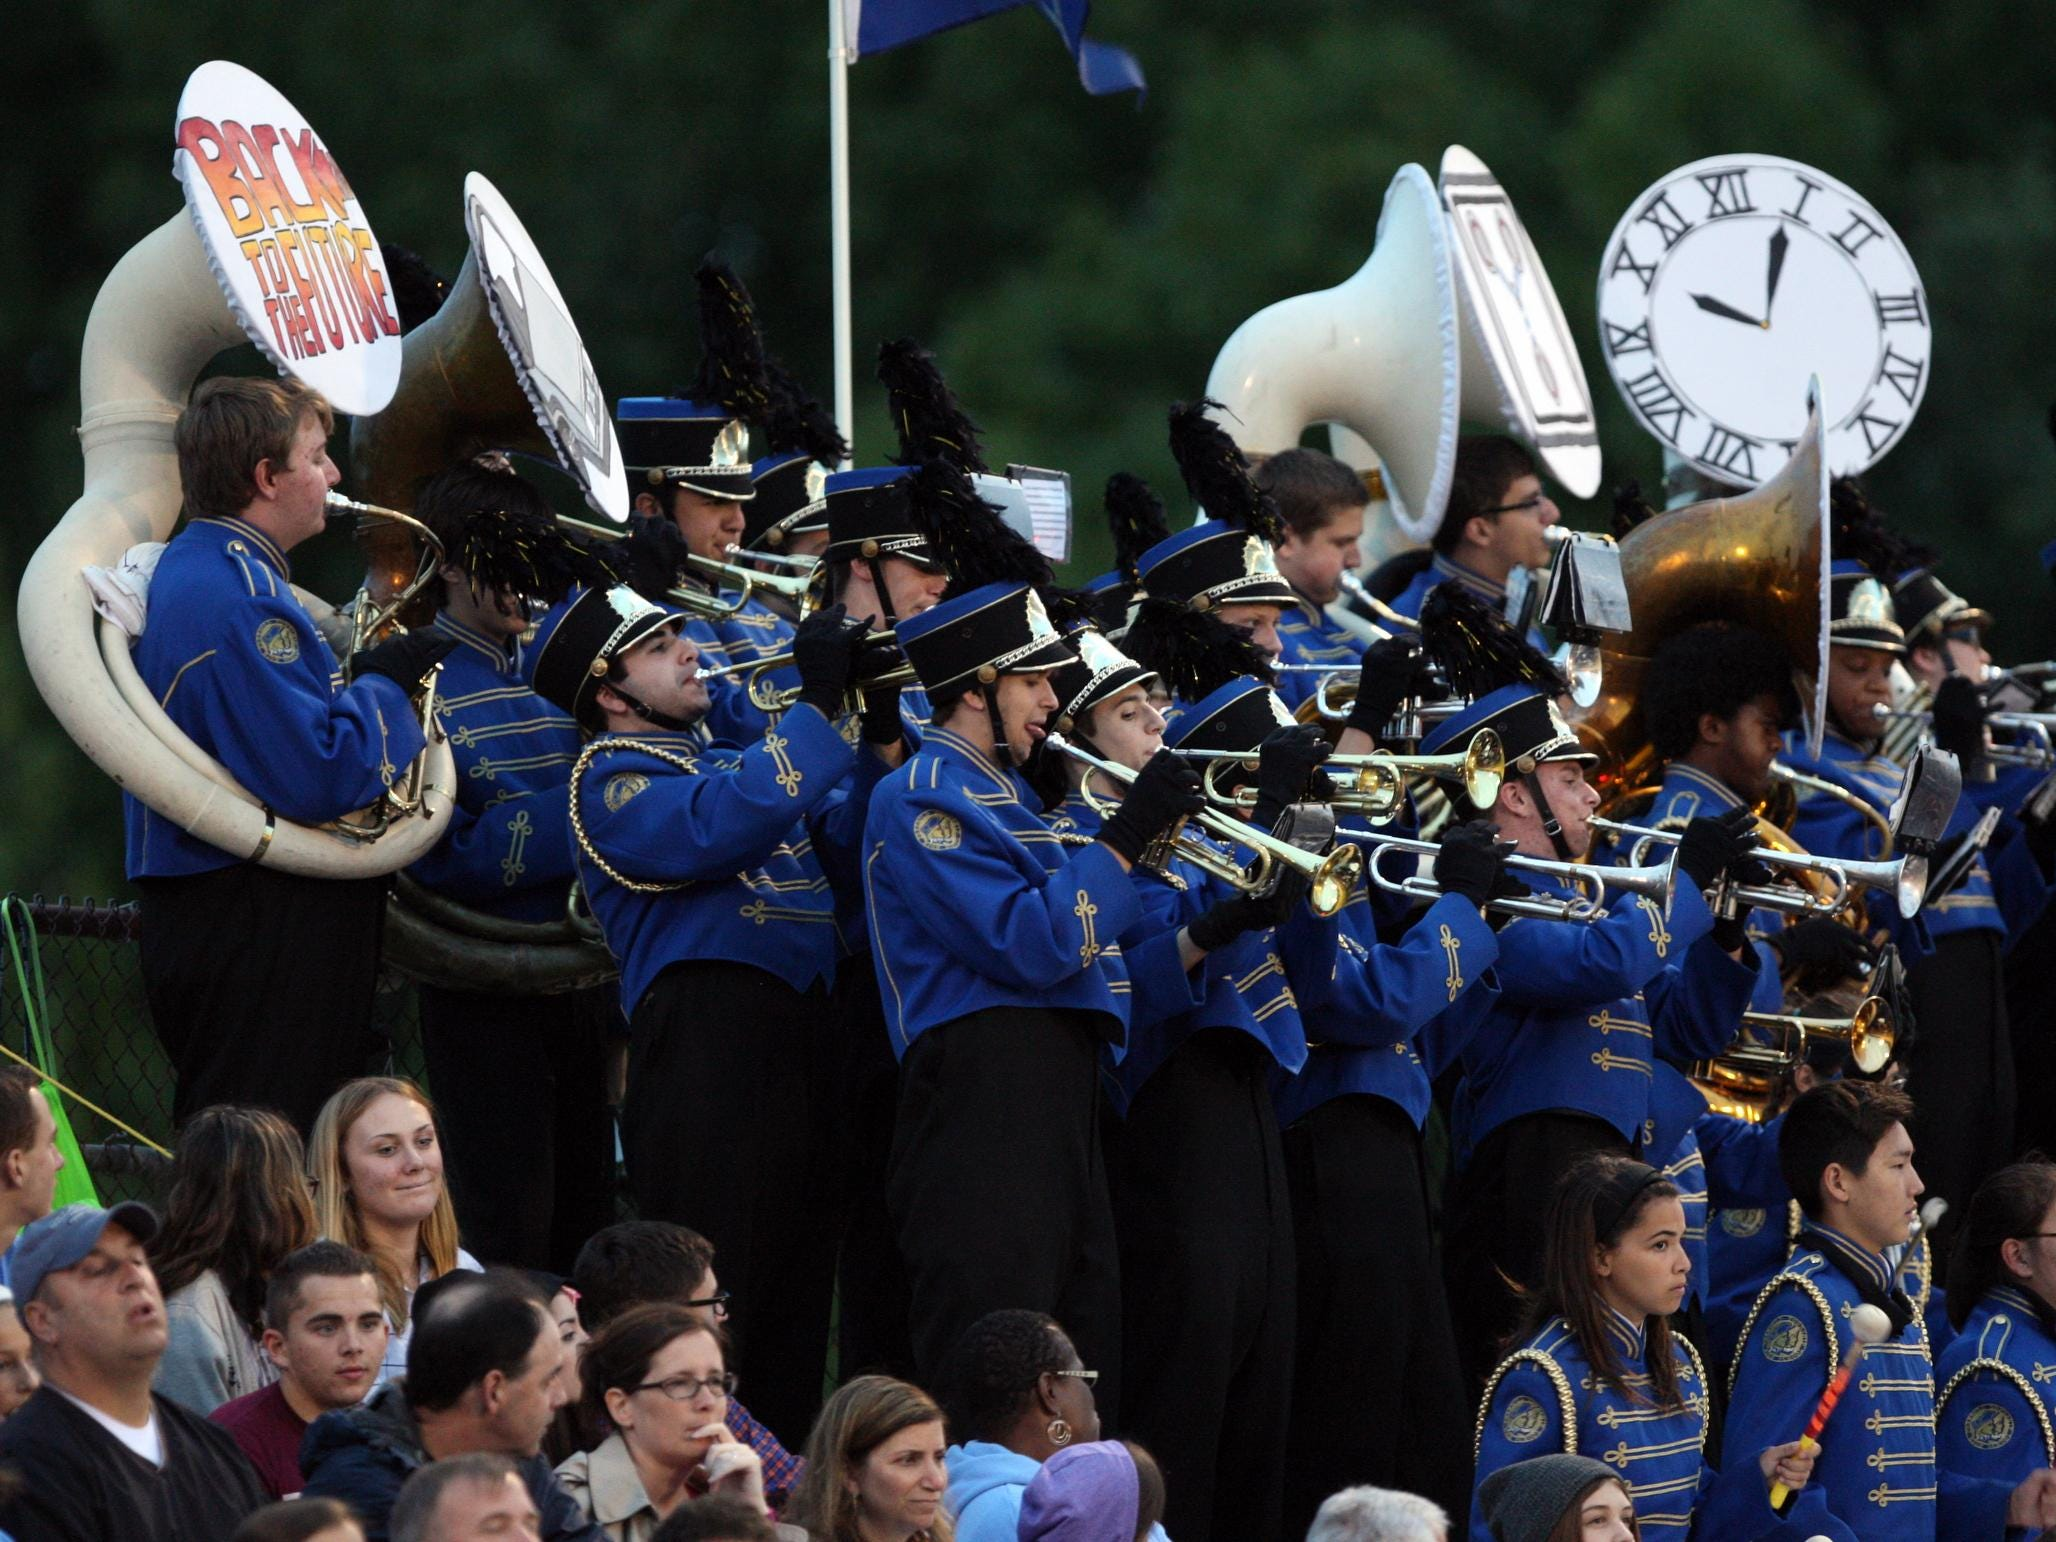 The Freehold Township band plays as their team plays Howell in a football game Friday, September 25, 2015, at Howell High School.